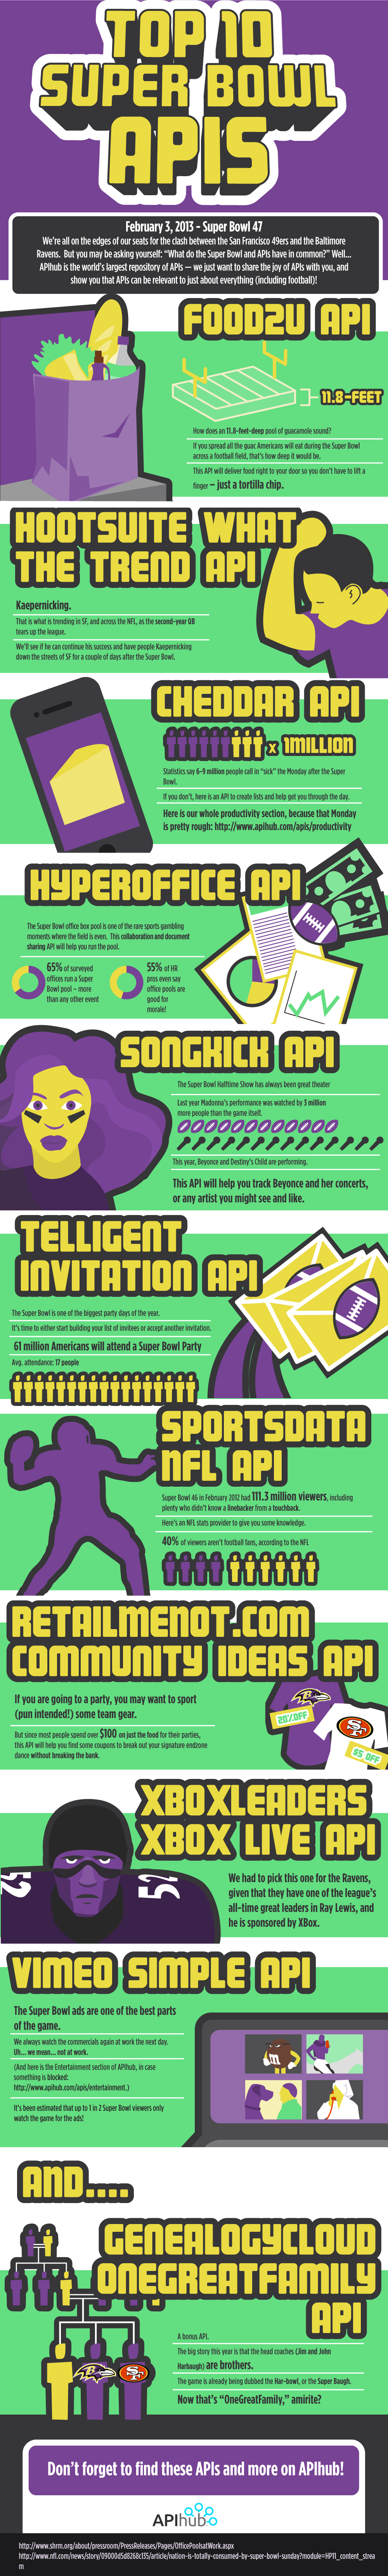 super bowl api